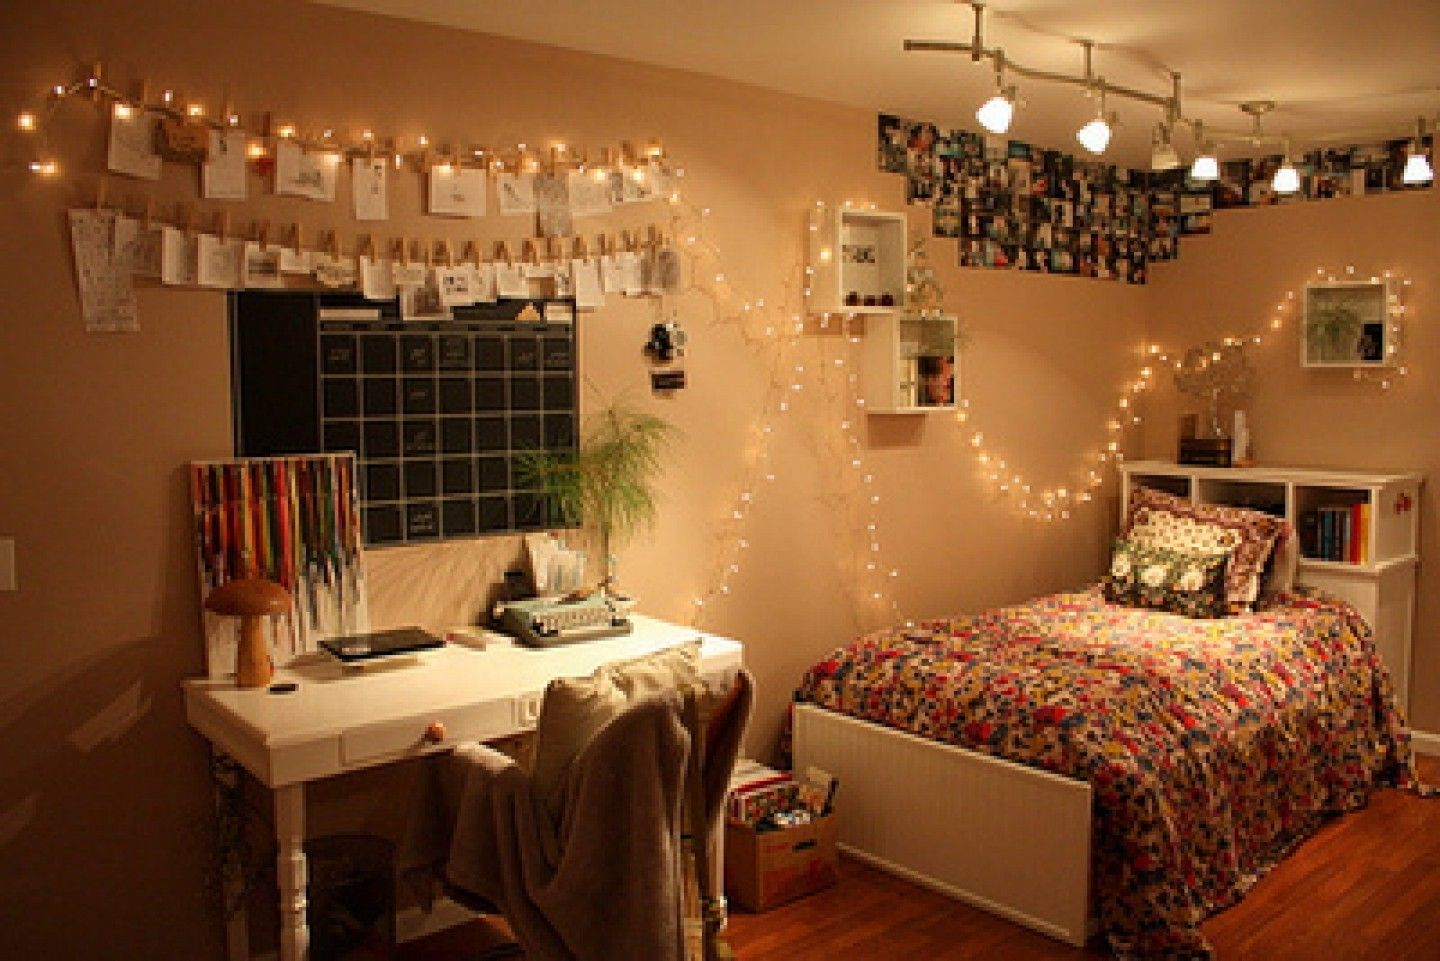 Bedroom Hipster Bedroom Decorating Ideas Hanging String